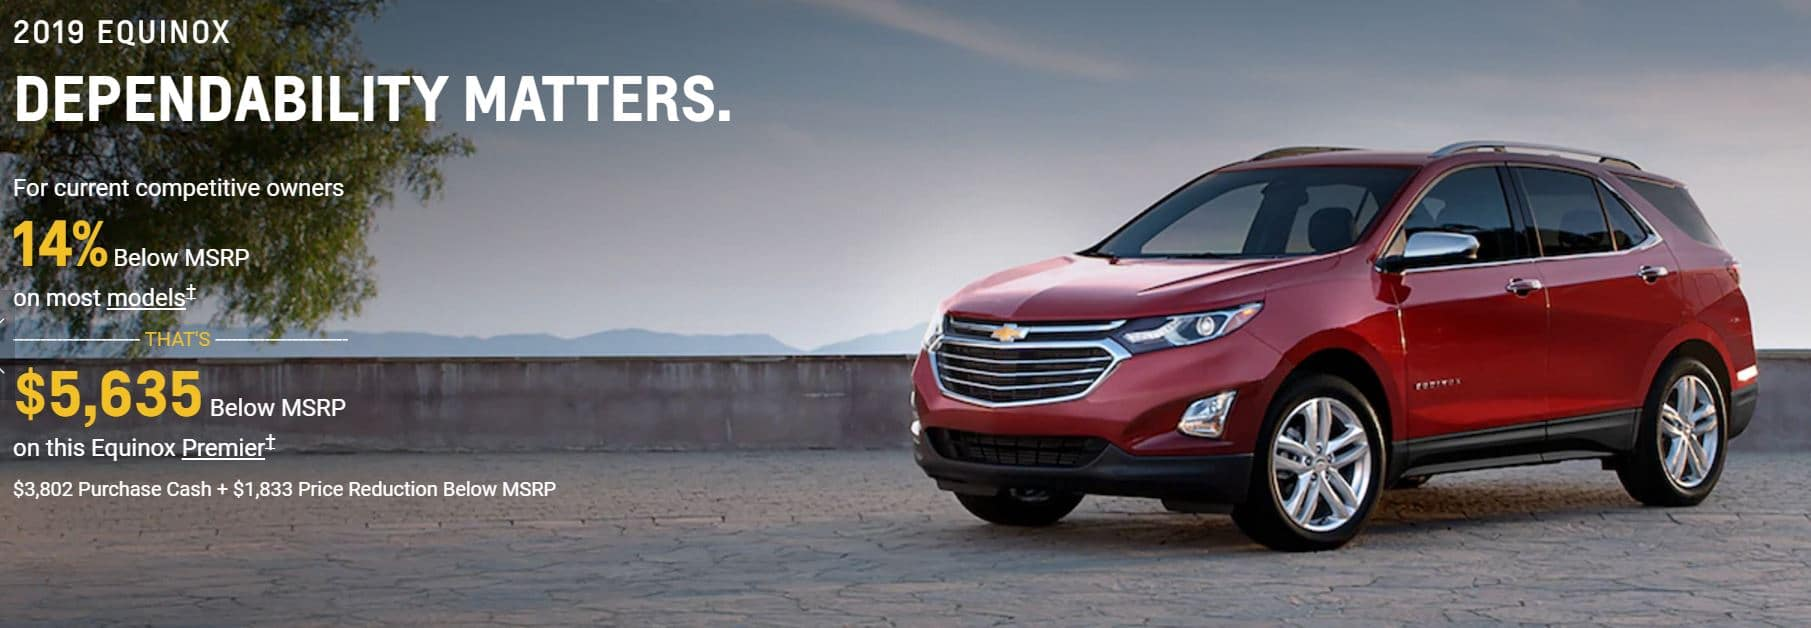 Chevy Dealer Milwaukee >> Chevrolet Dealership In Chicago Il Mike Anderson Chevrolet Of Chicago